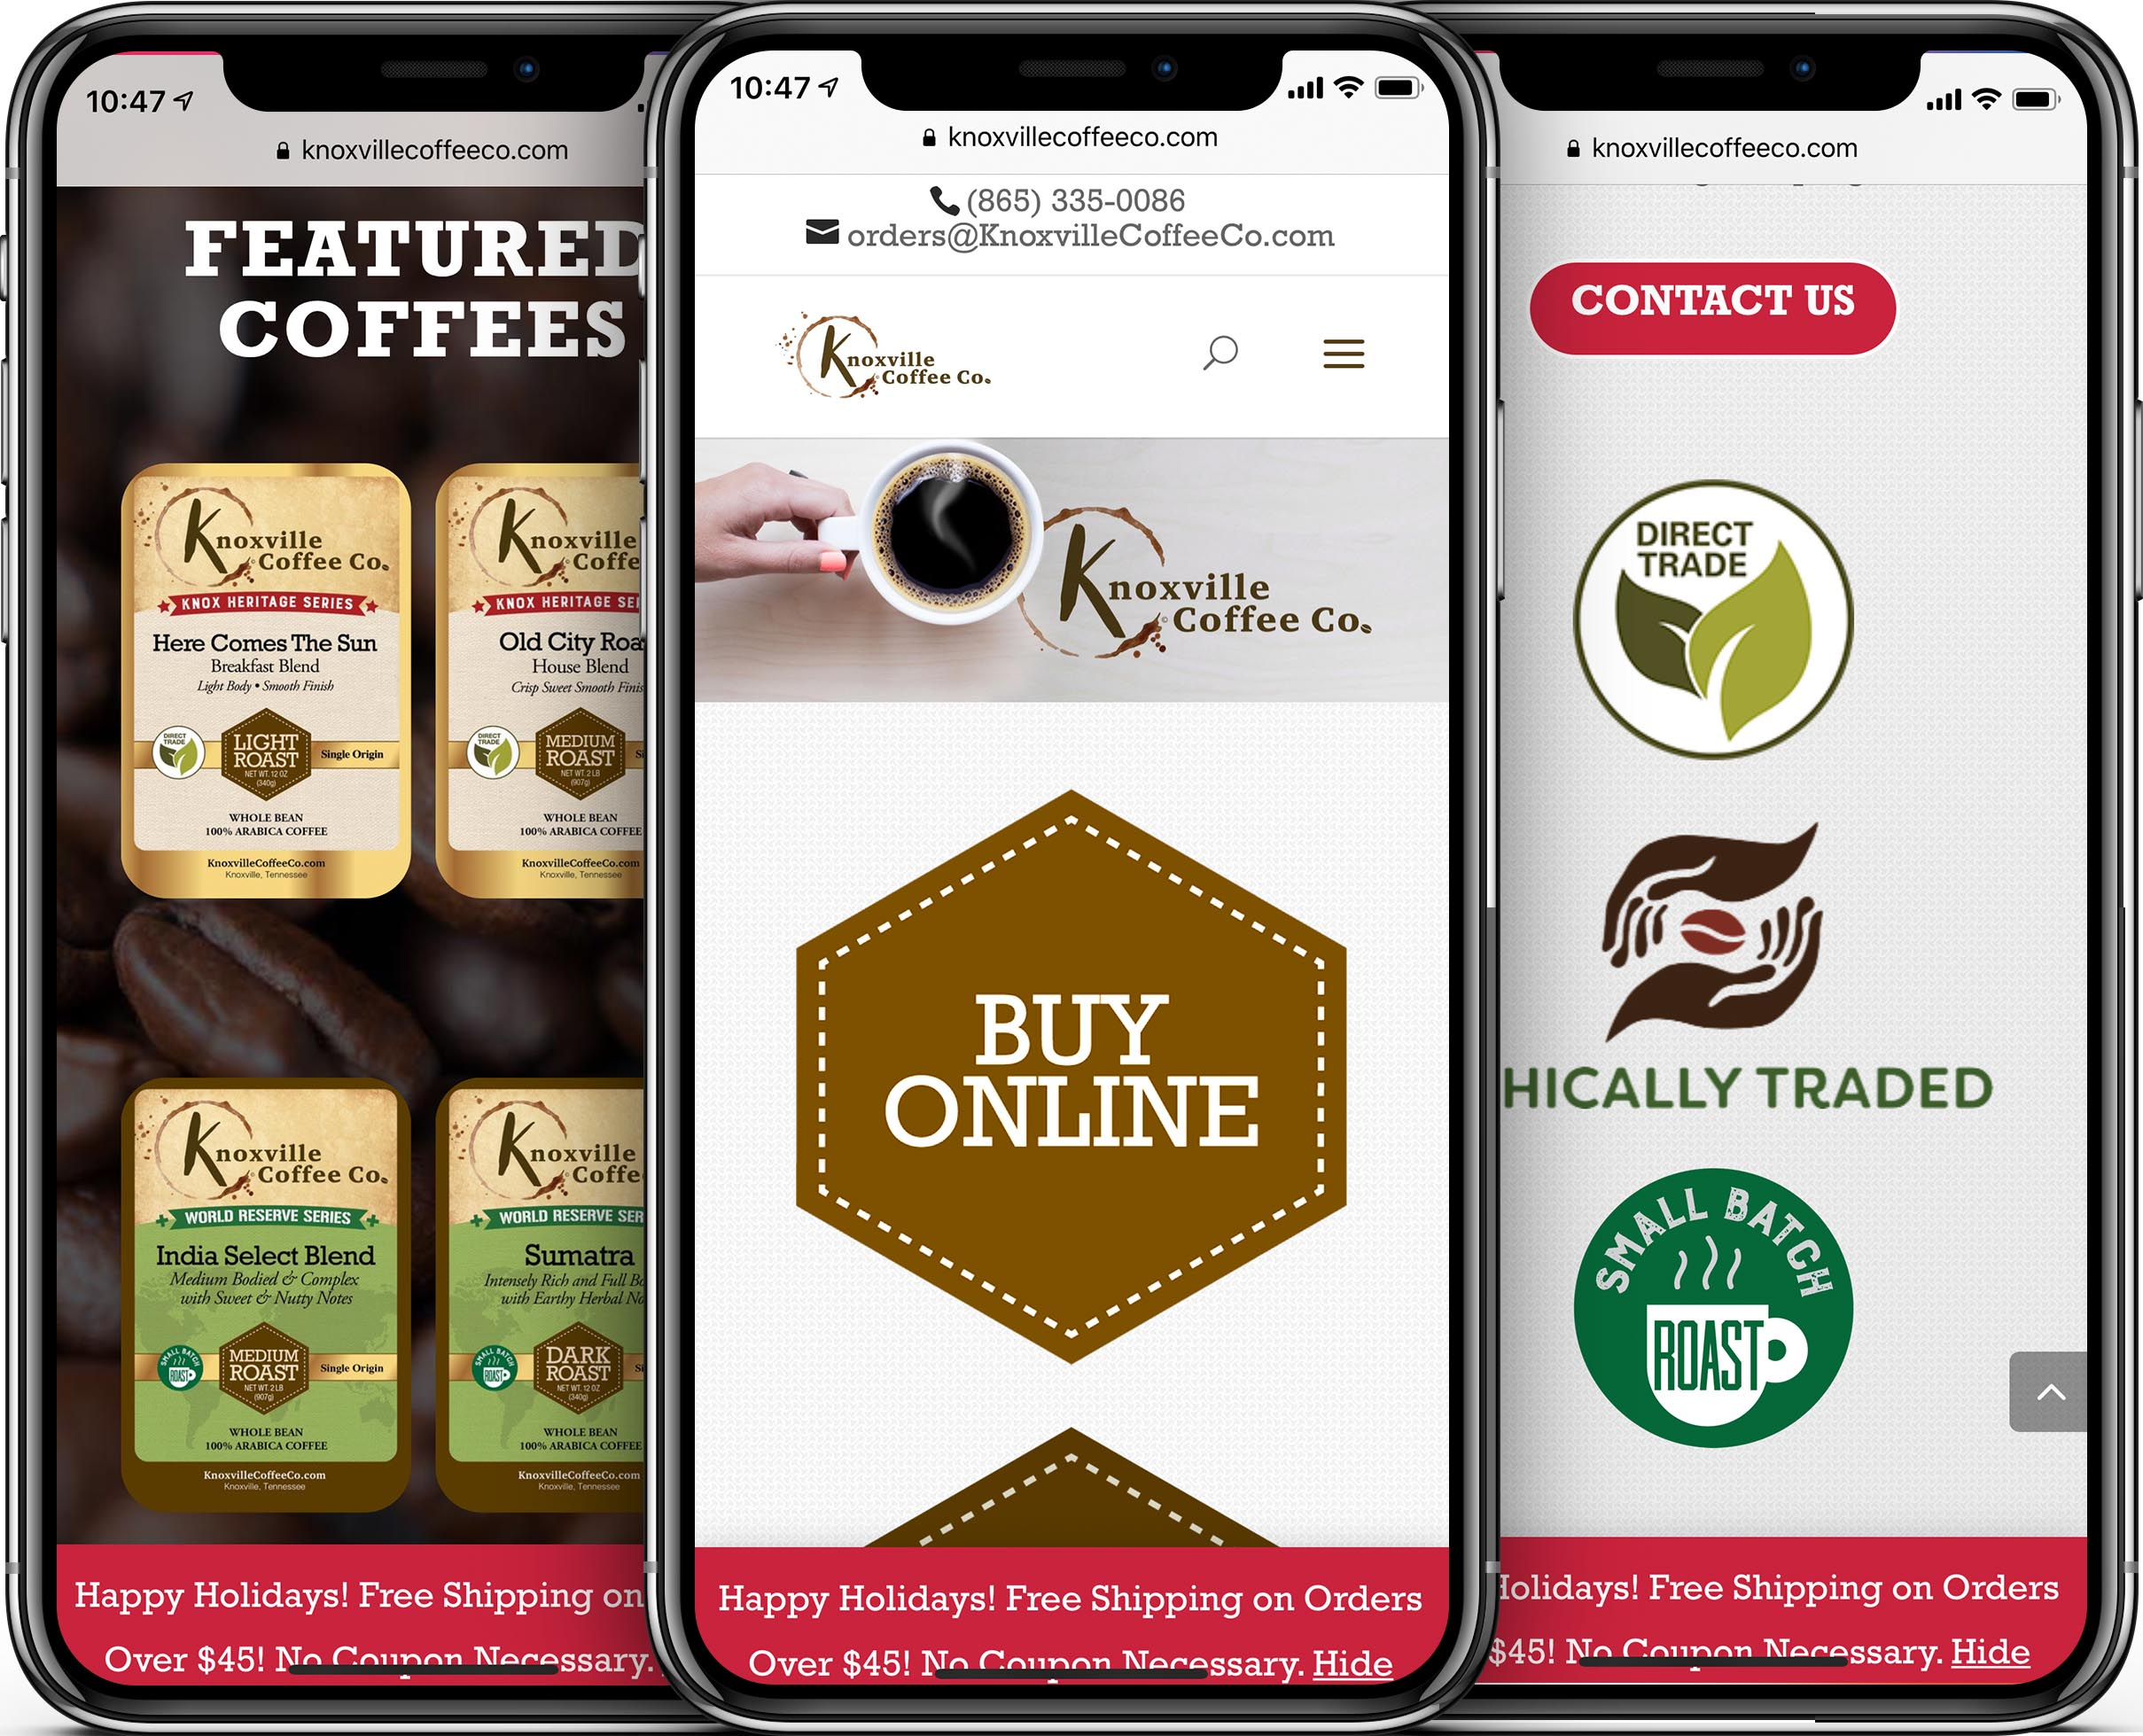 Knoxville Coffee Company Mobile-Friendly Web Design